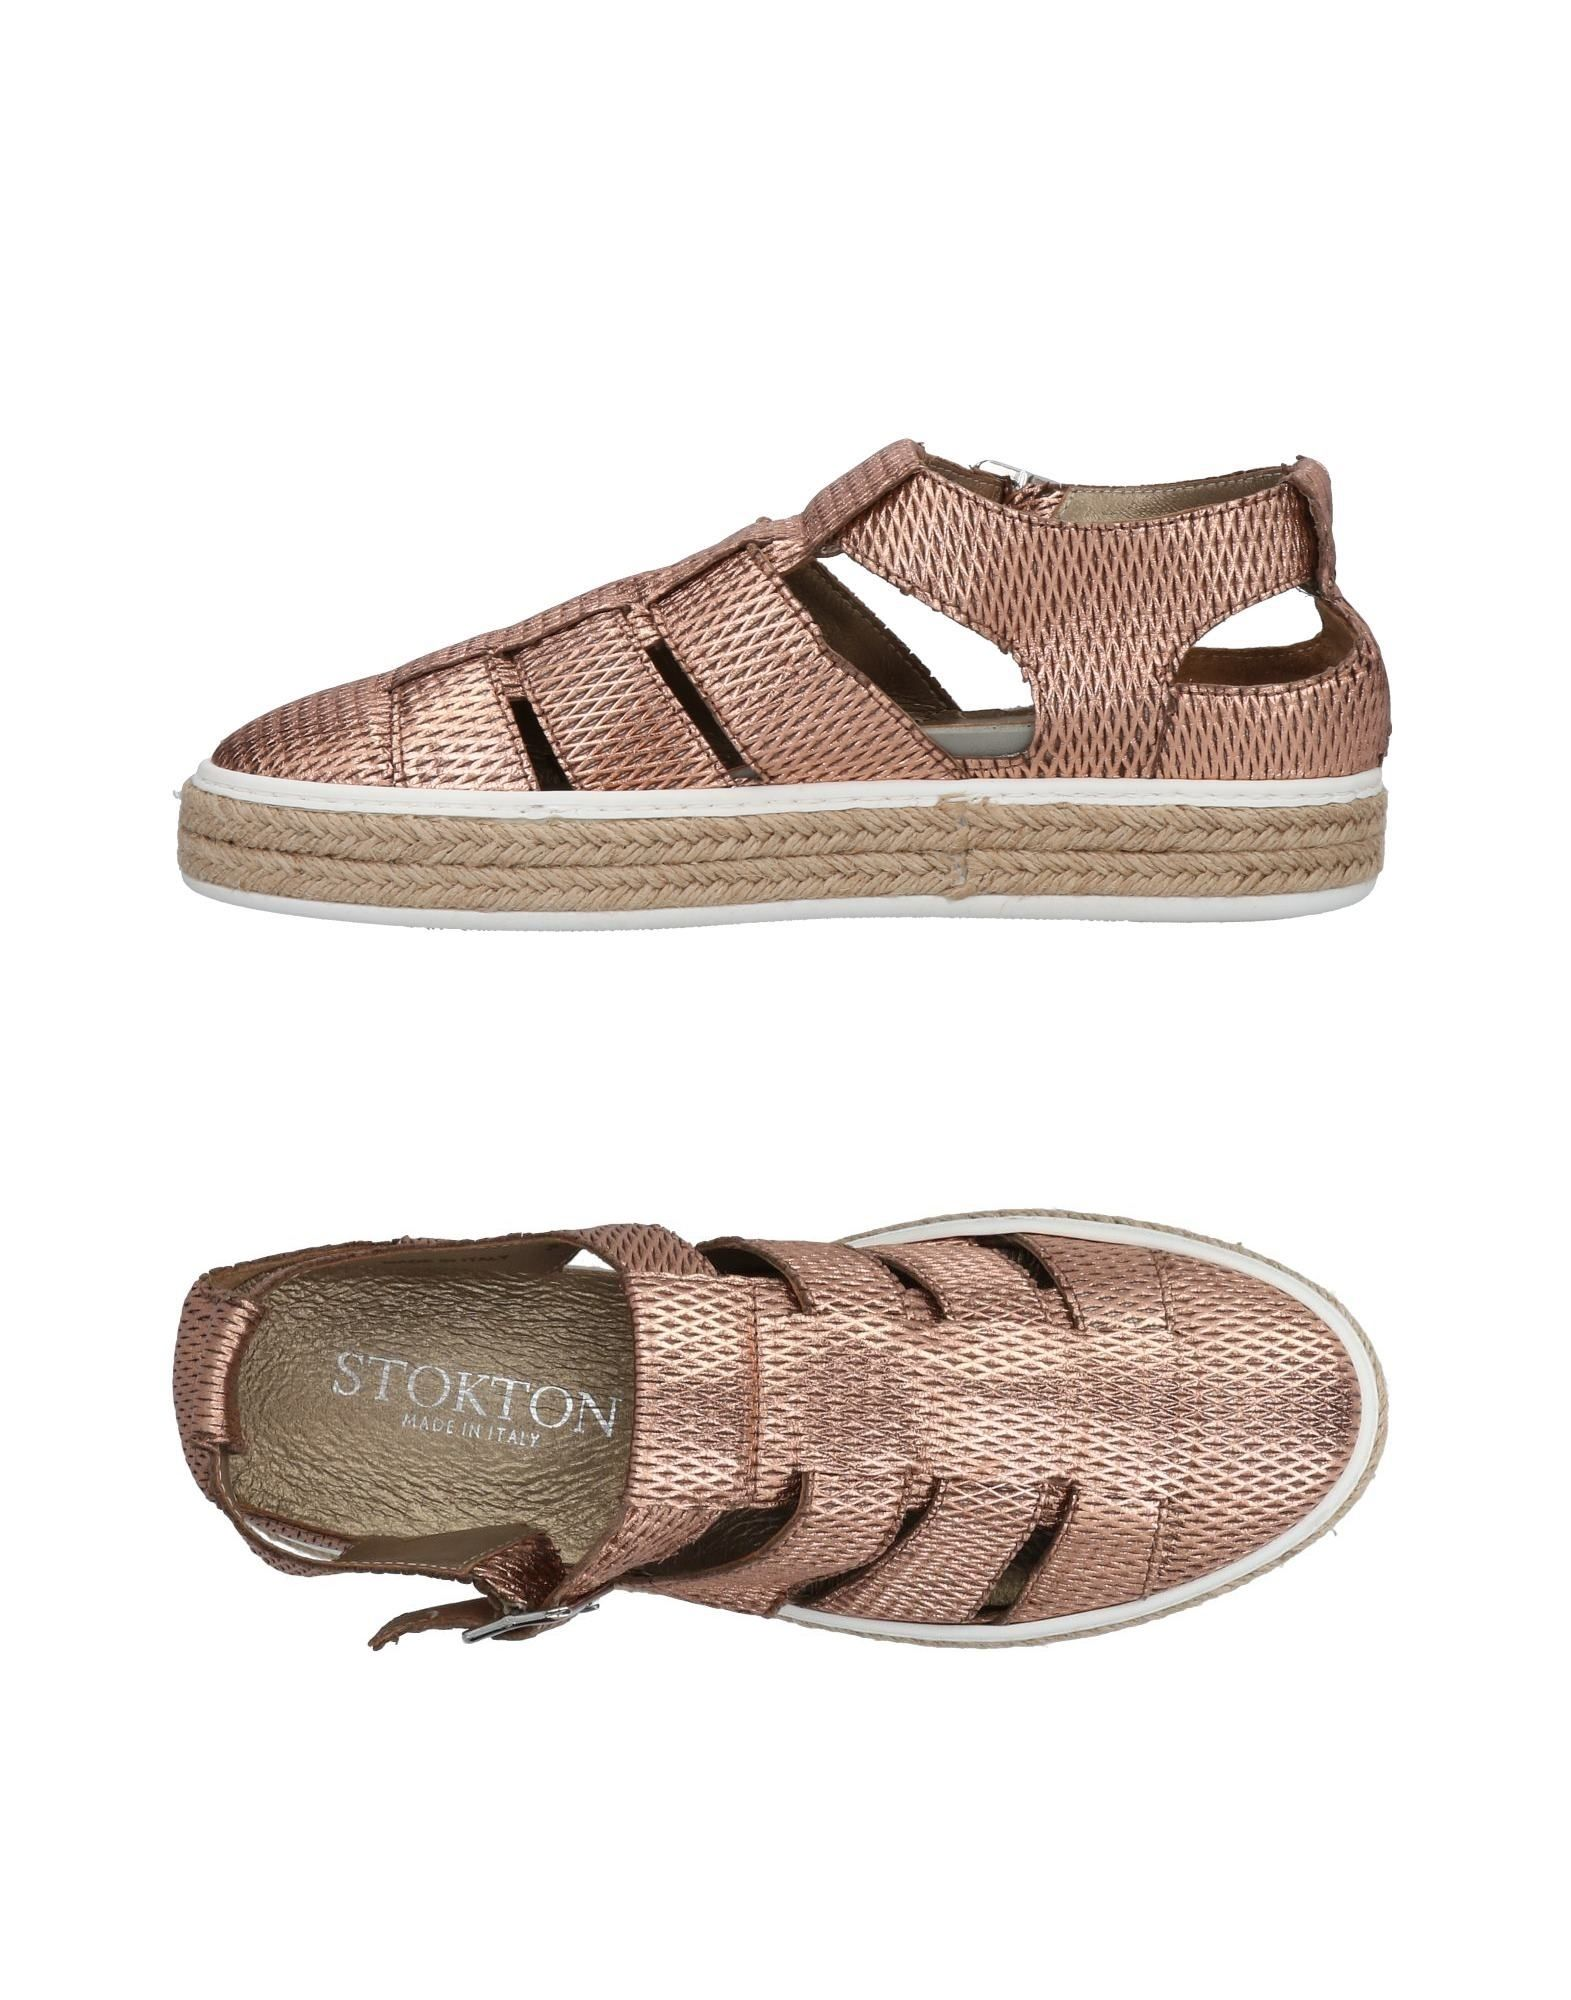 Stokton Sandals Sandals - Women Stokton Sandals Stokton online on  Canada - 11486224PD 9eaf4e